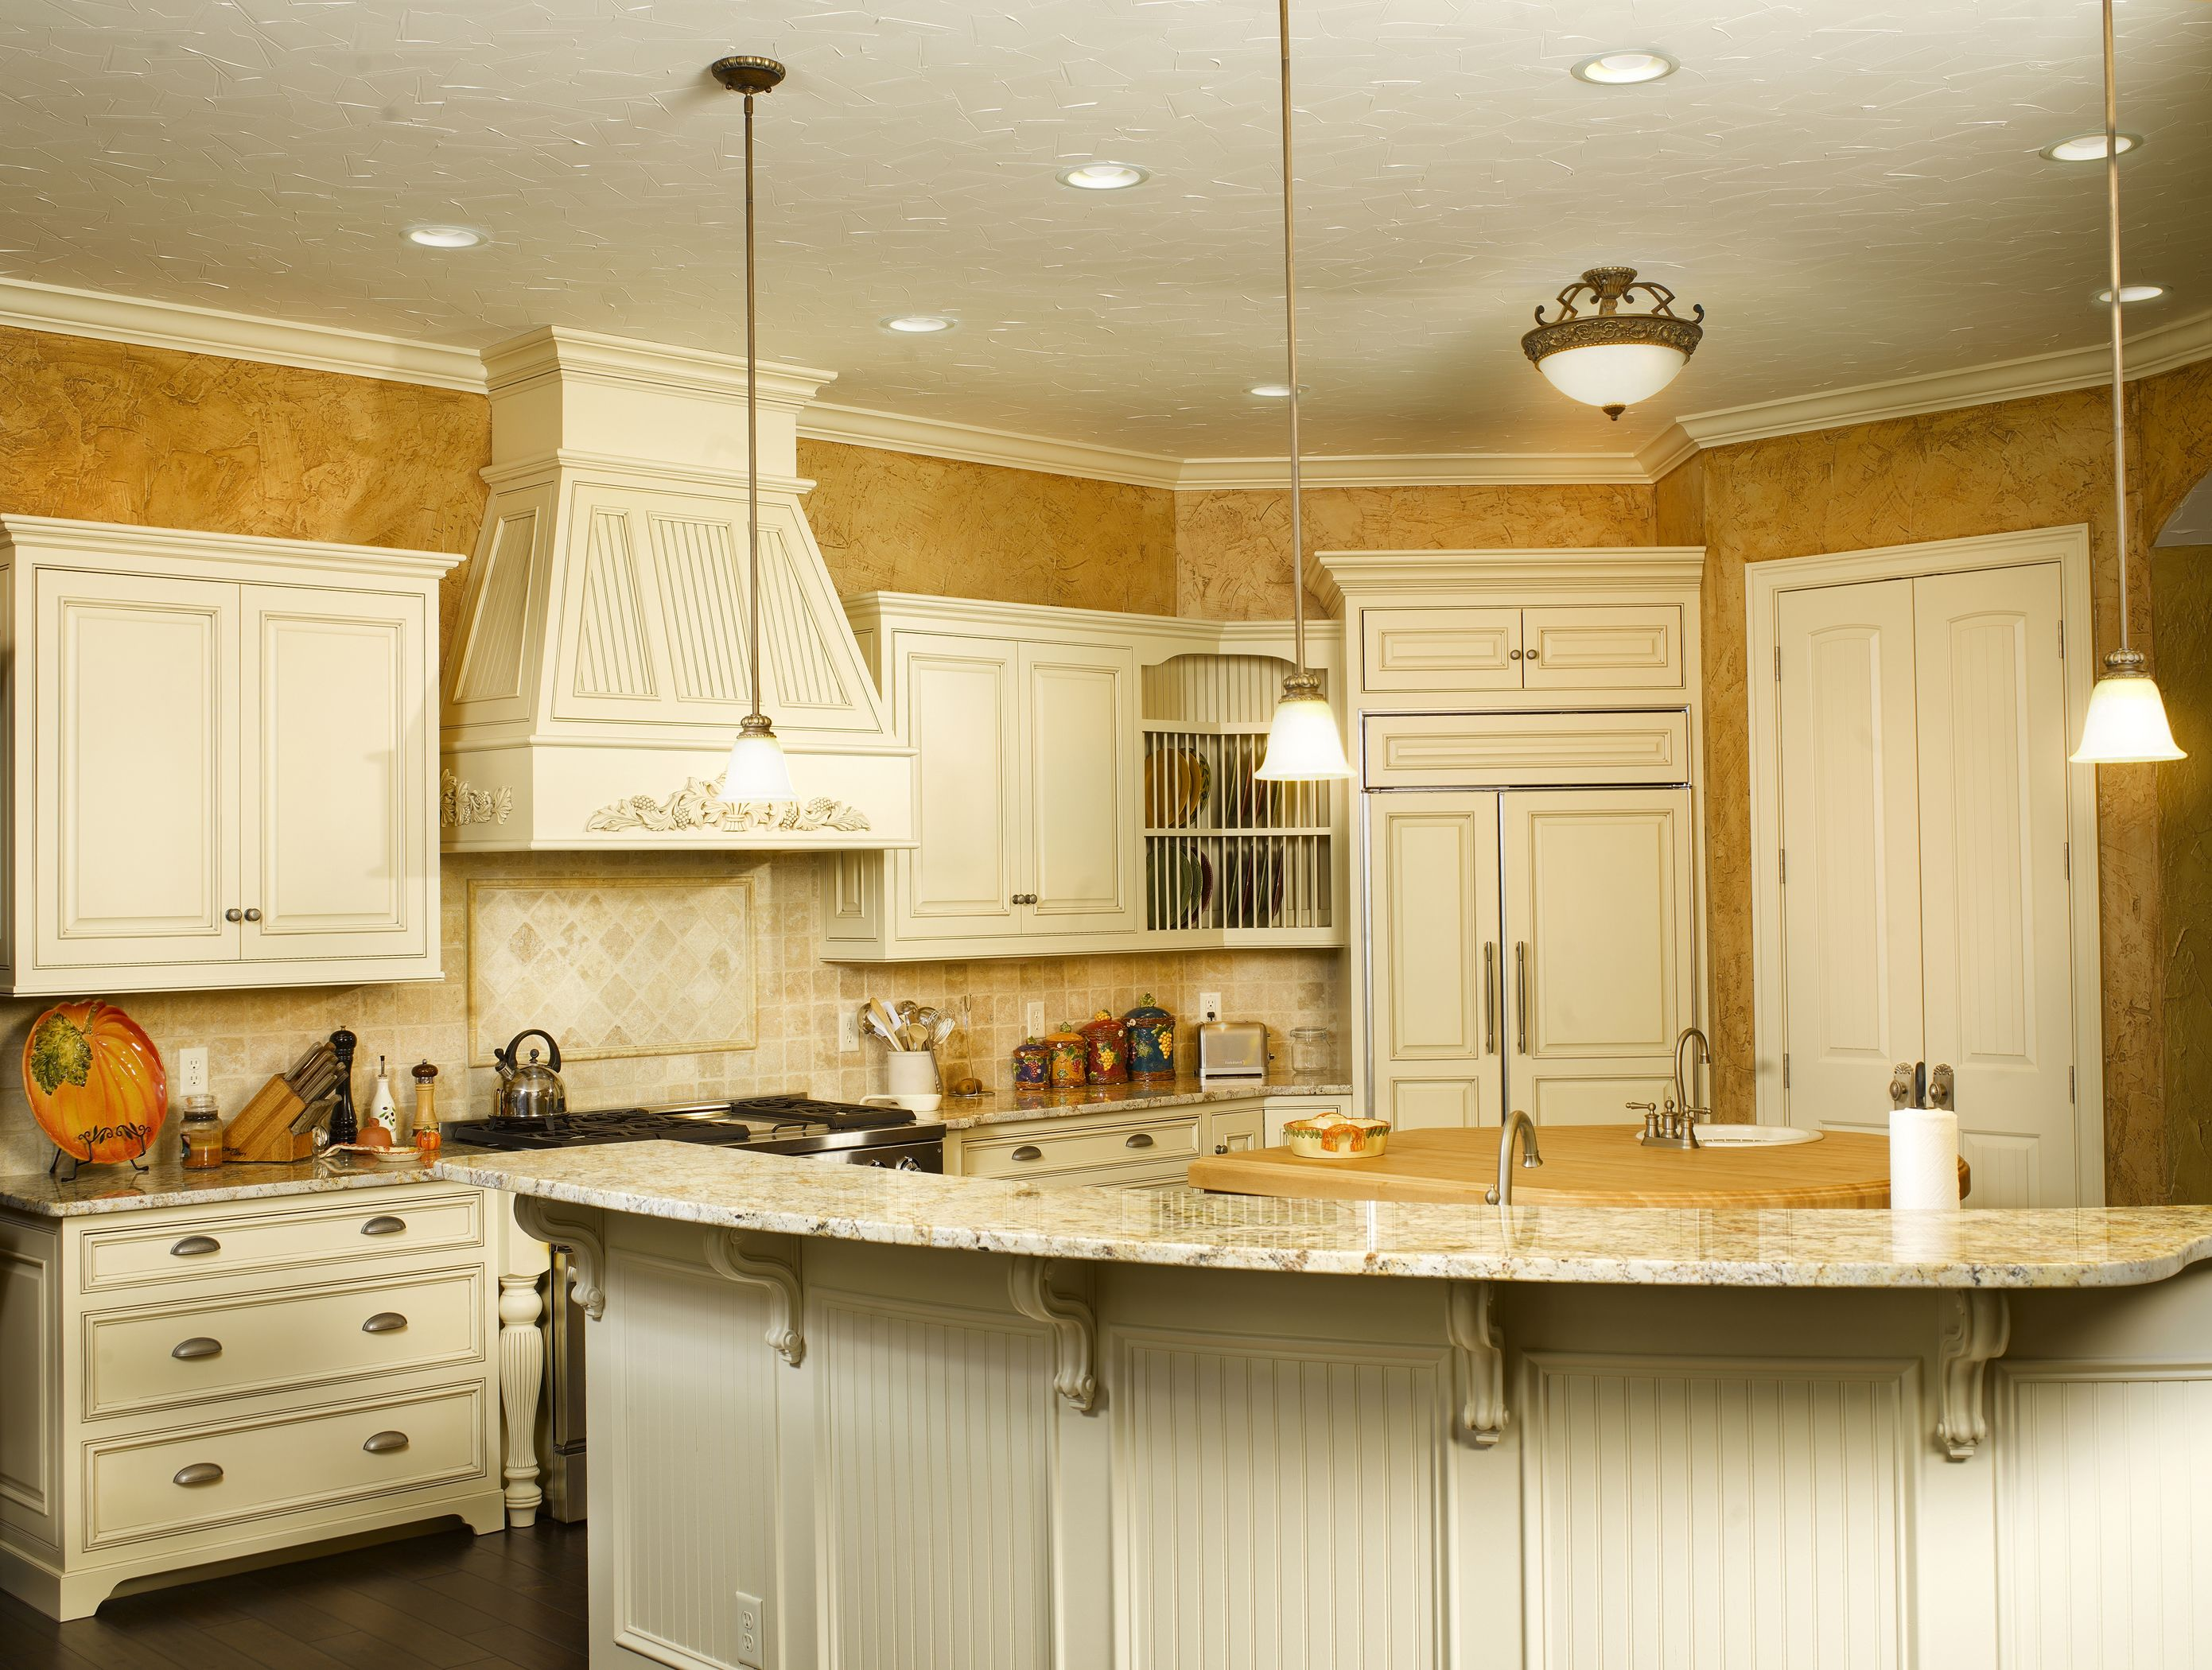 Pin By Herron S Amish Furniture On Amish Cabinets Amish Kitchen Cabinets Cabinet Furniture Kitchen Cabinet Design